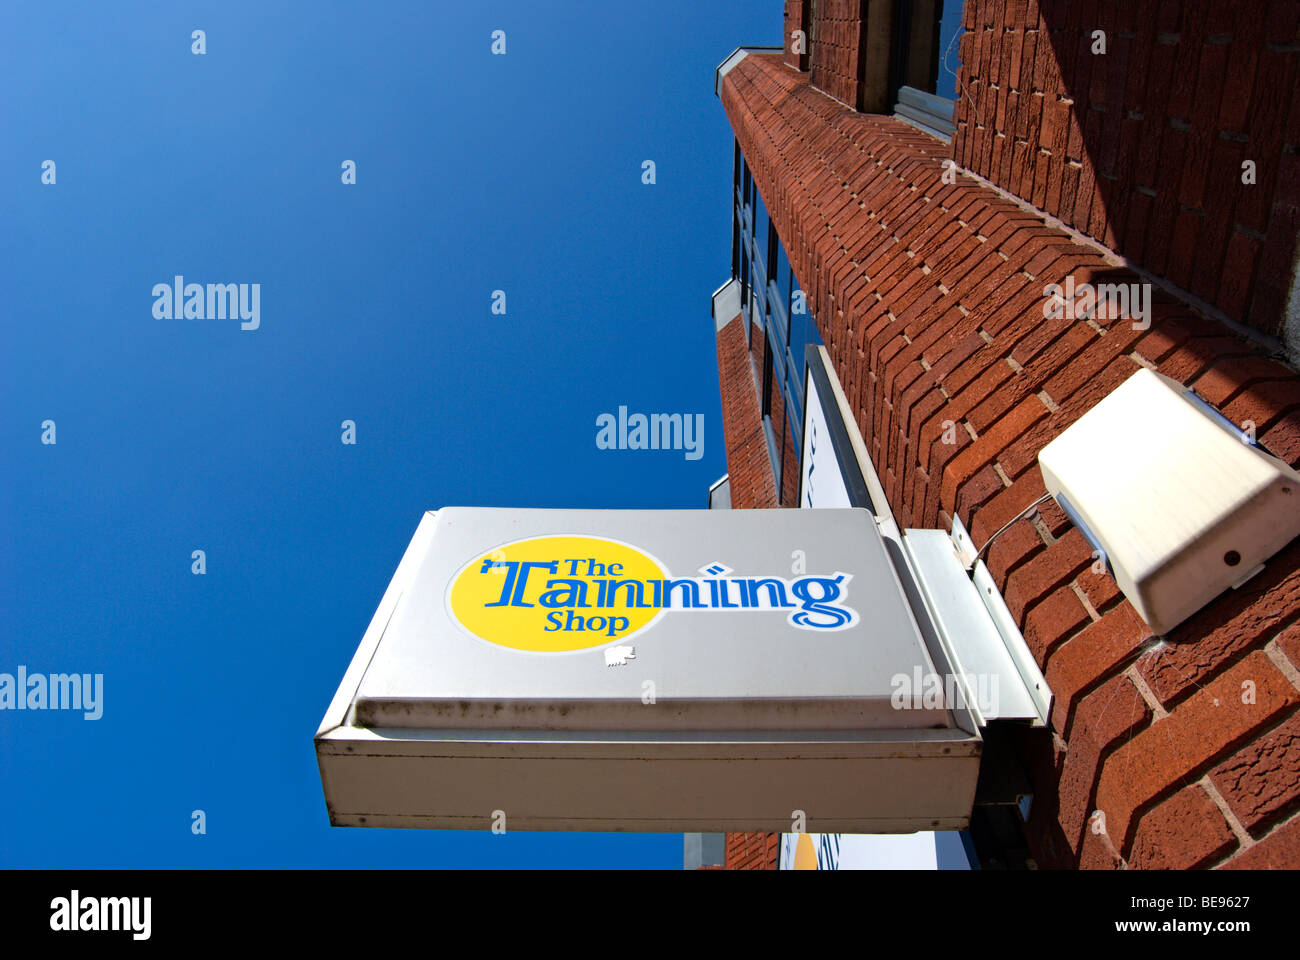 sign for a branch of the tanning shop, in twickenham, middlesex, england Stock Photo